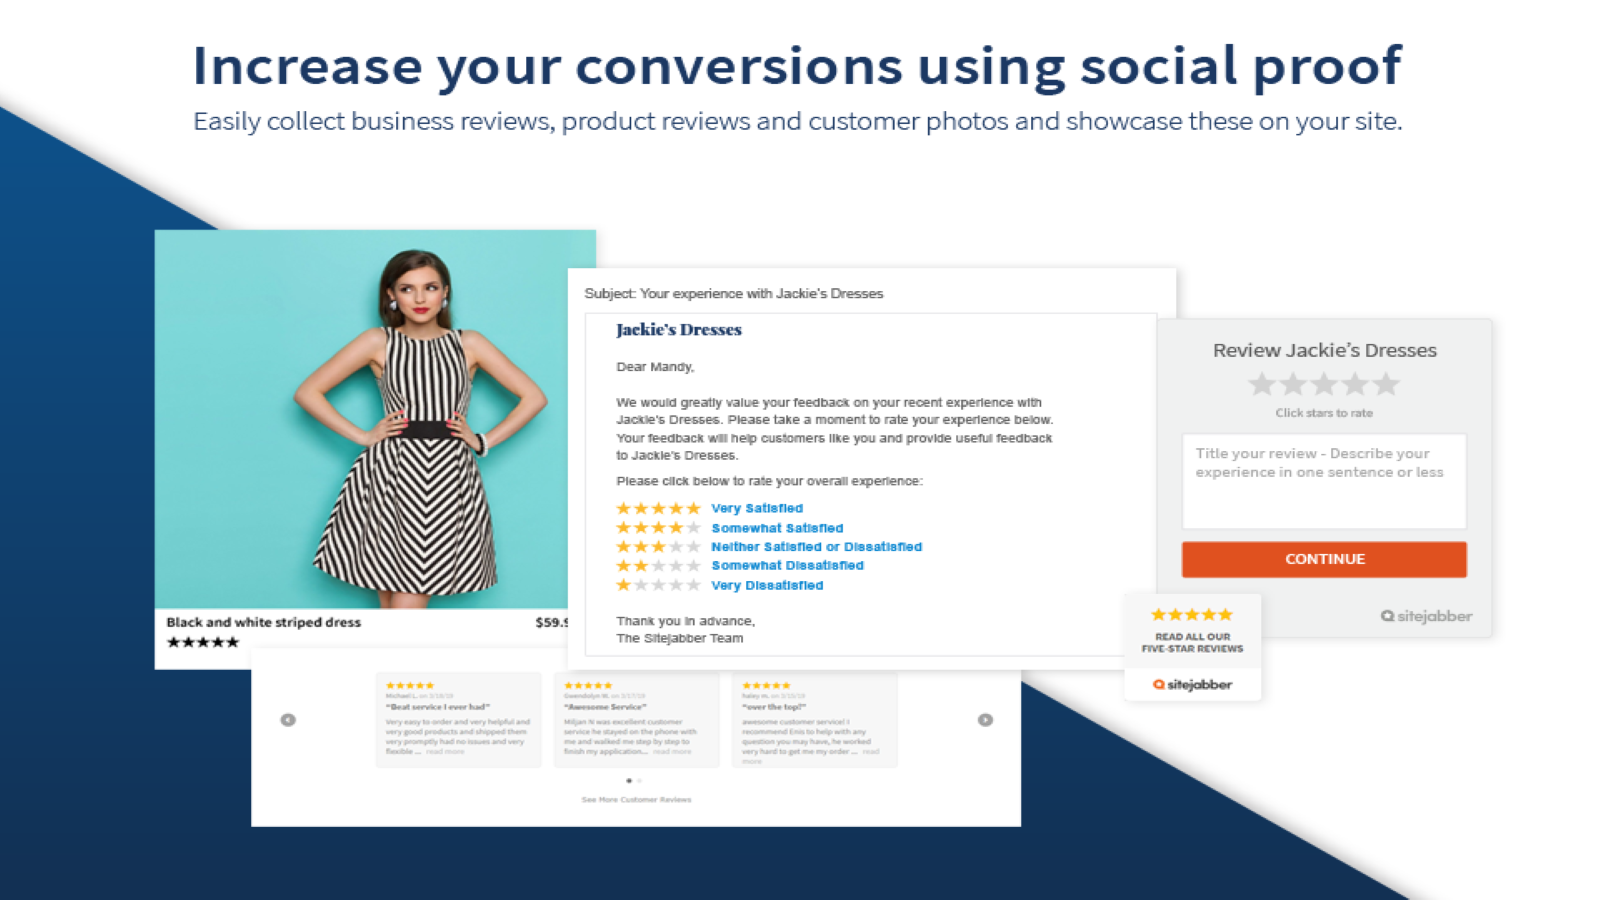 Increase your conversions using social proof